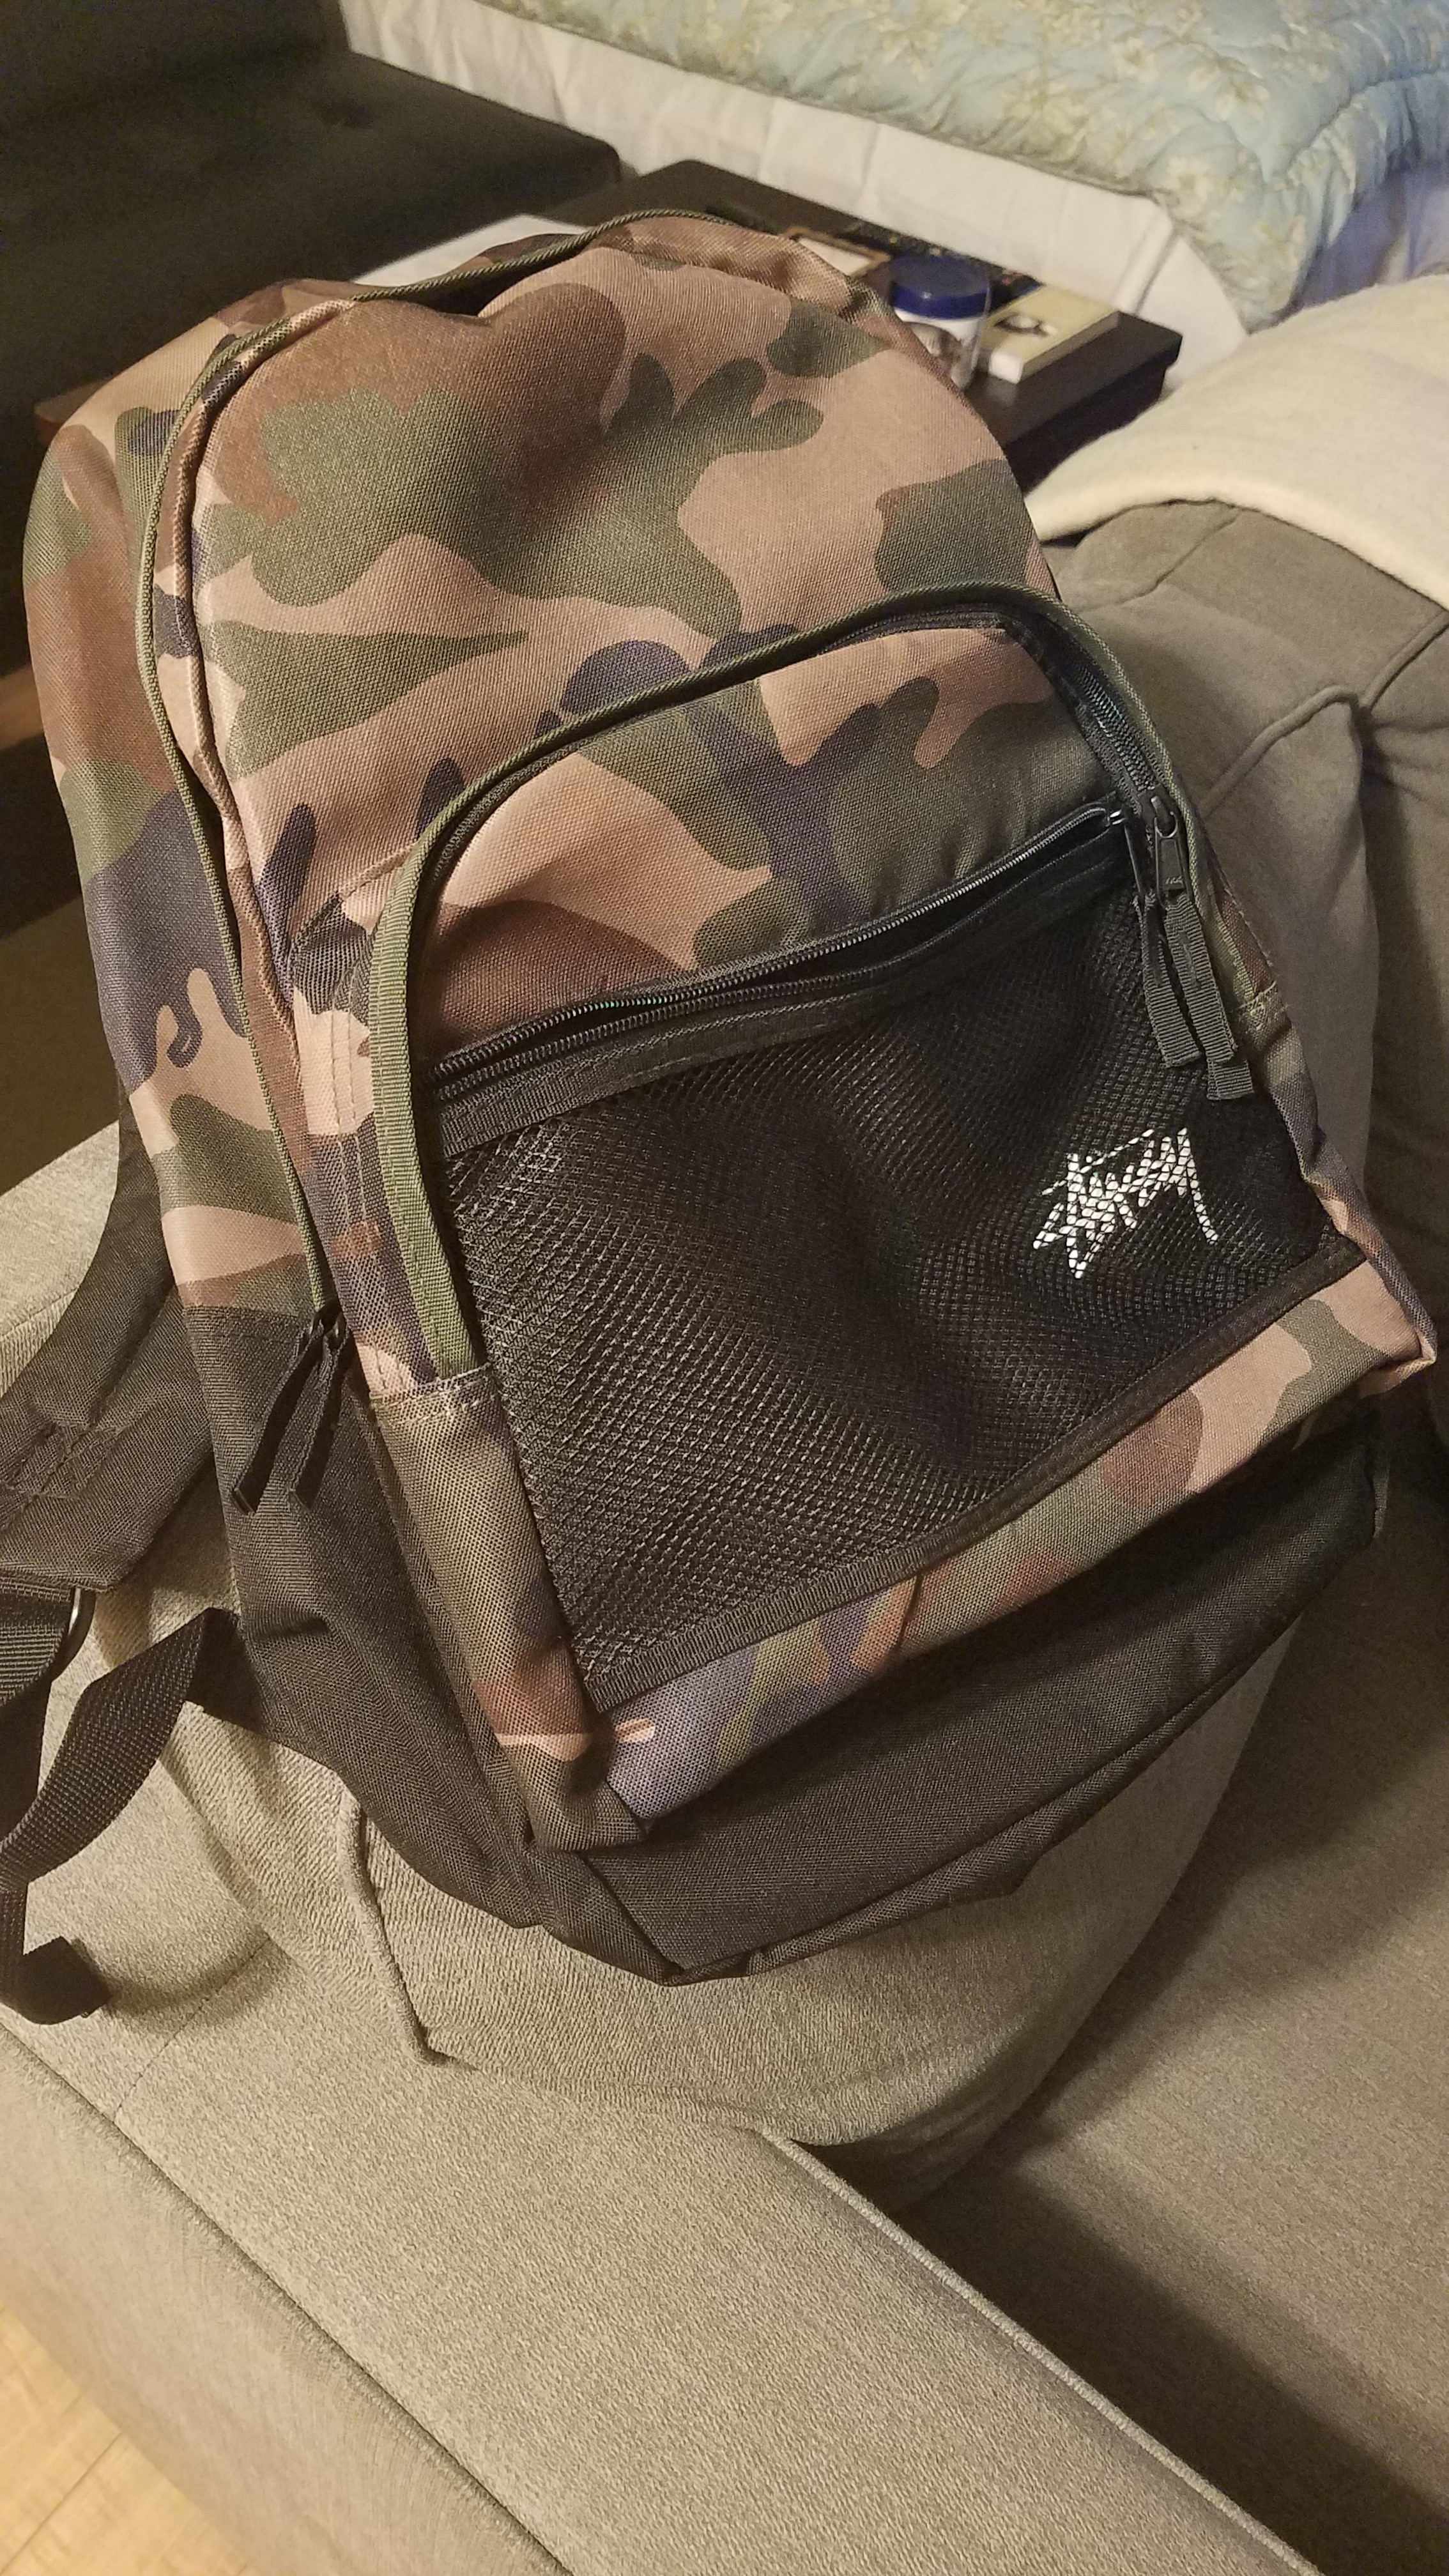 444b9ceddb Stussy Stock Backpack 133018-Camo Size one size - Bags   Luggage for Sale -  Grailed